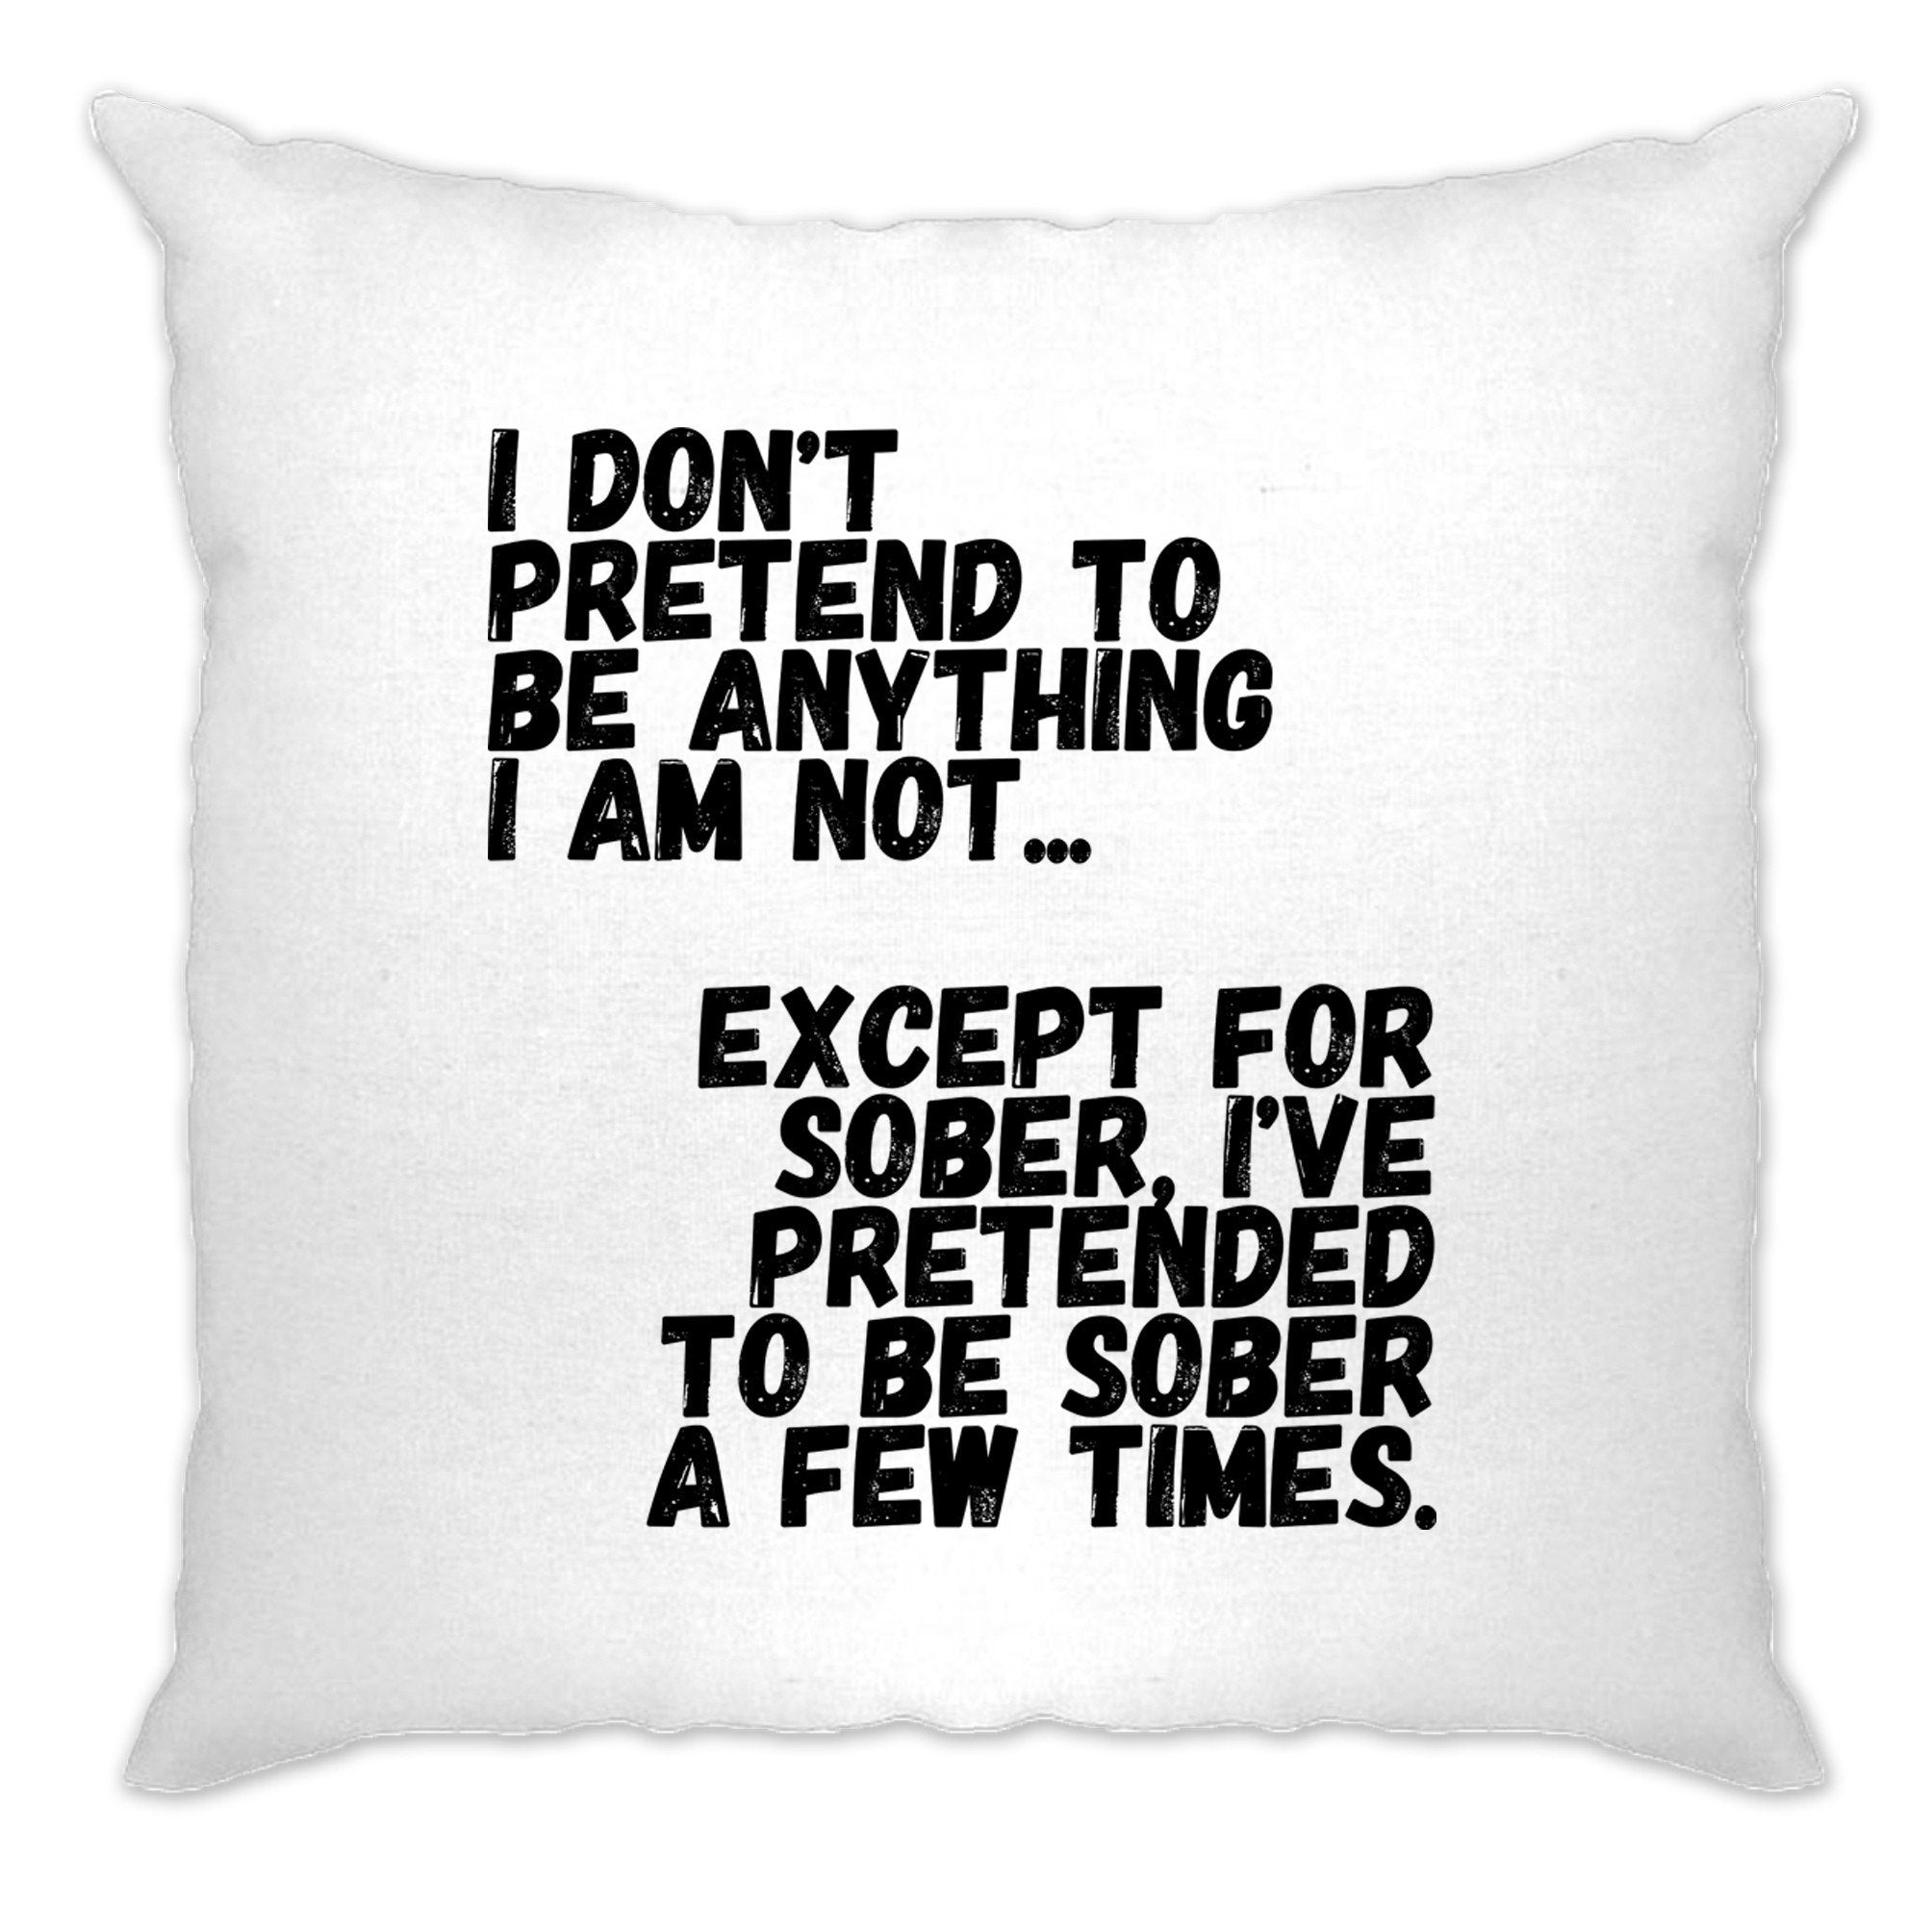 Pub Cushion Cover Don't Pretend To Be Anything I'm Not Joke